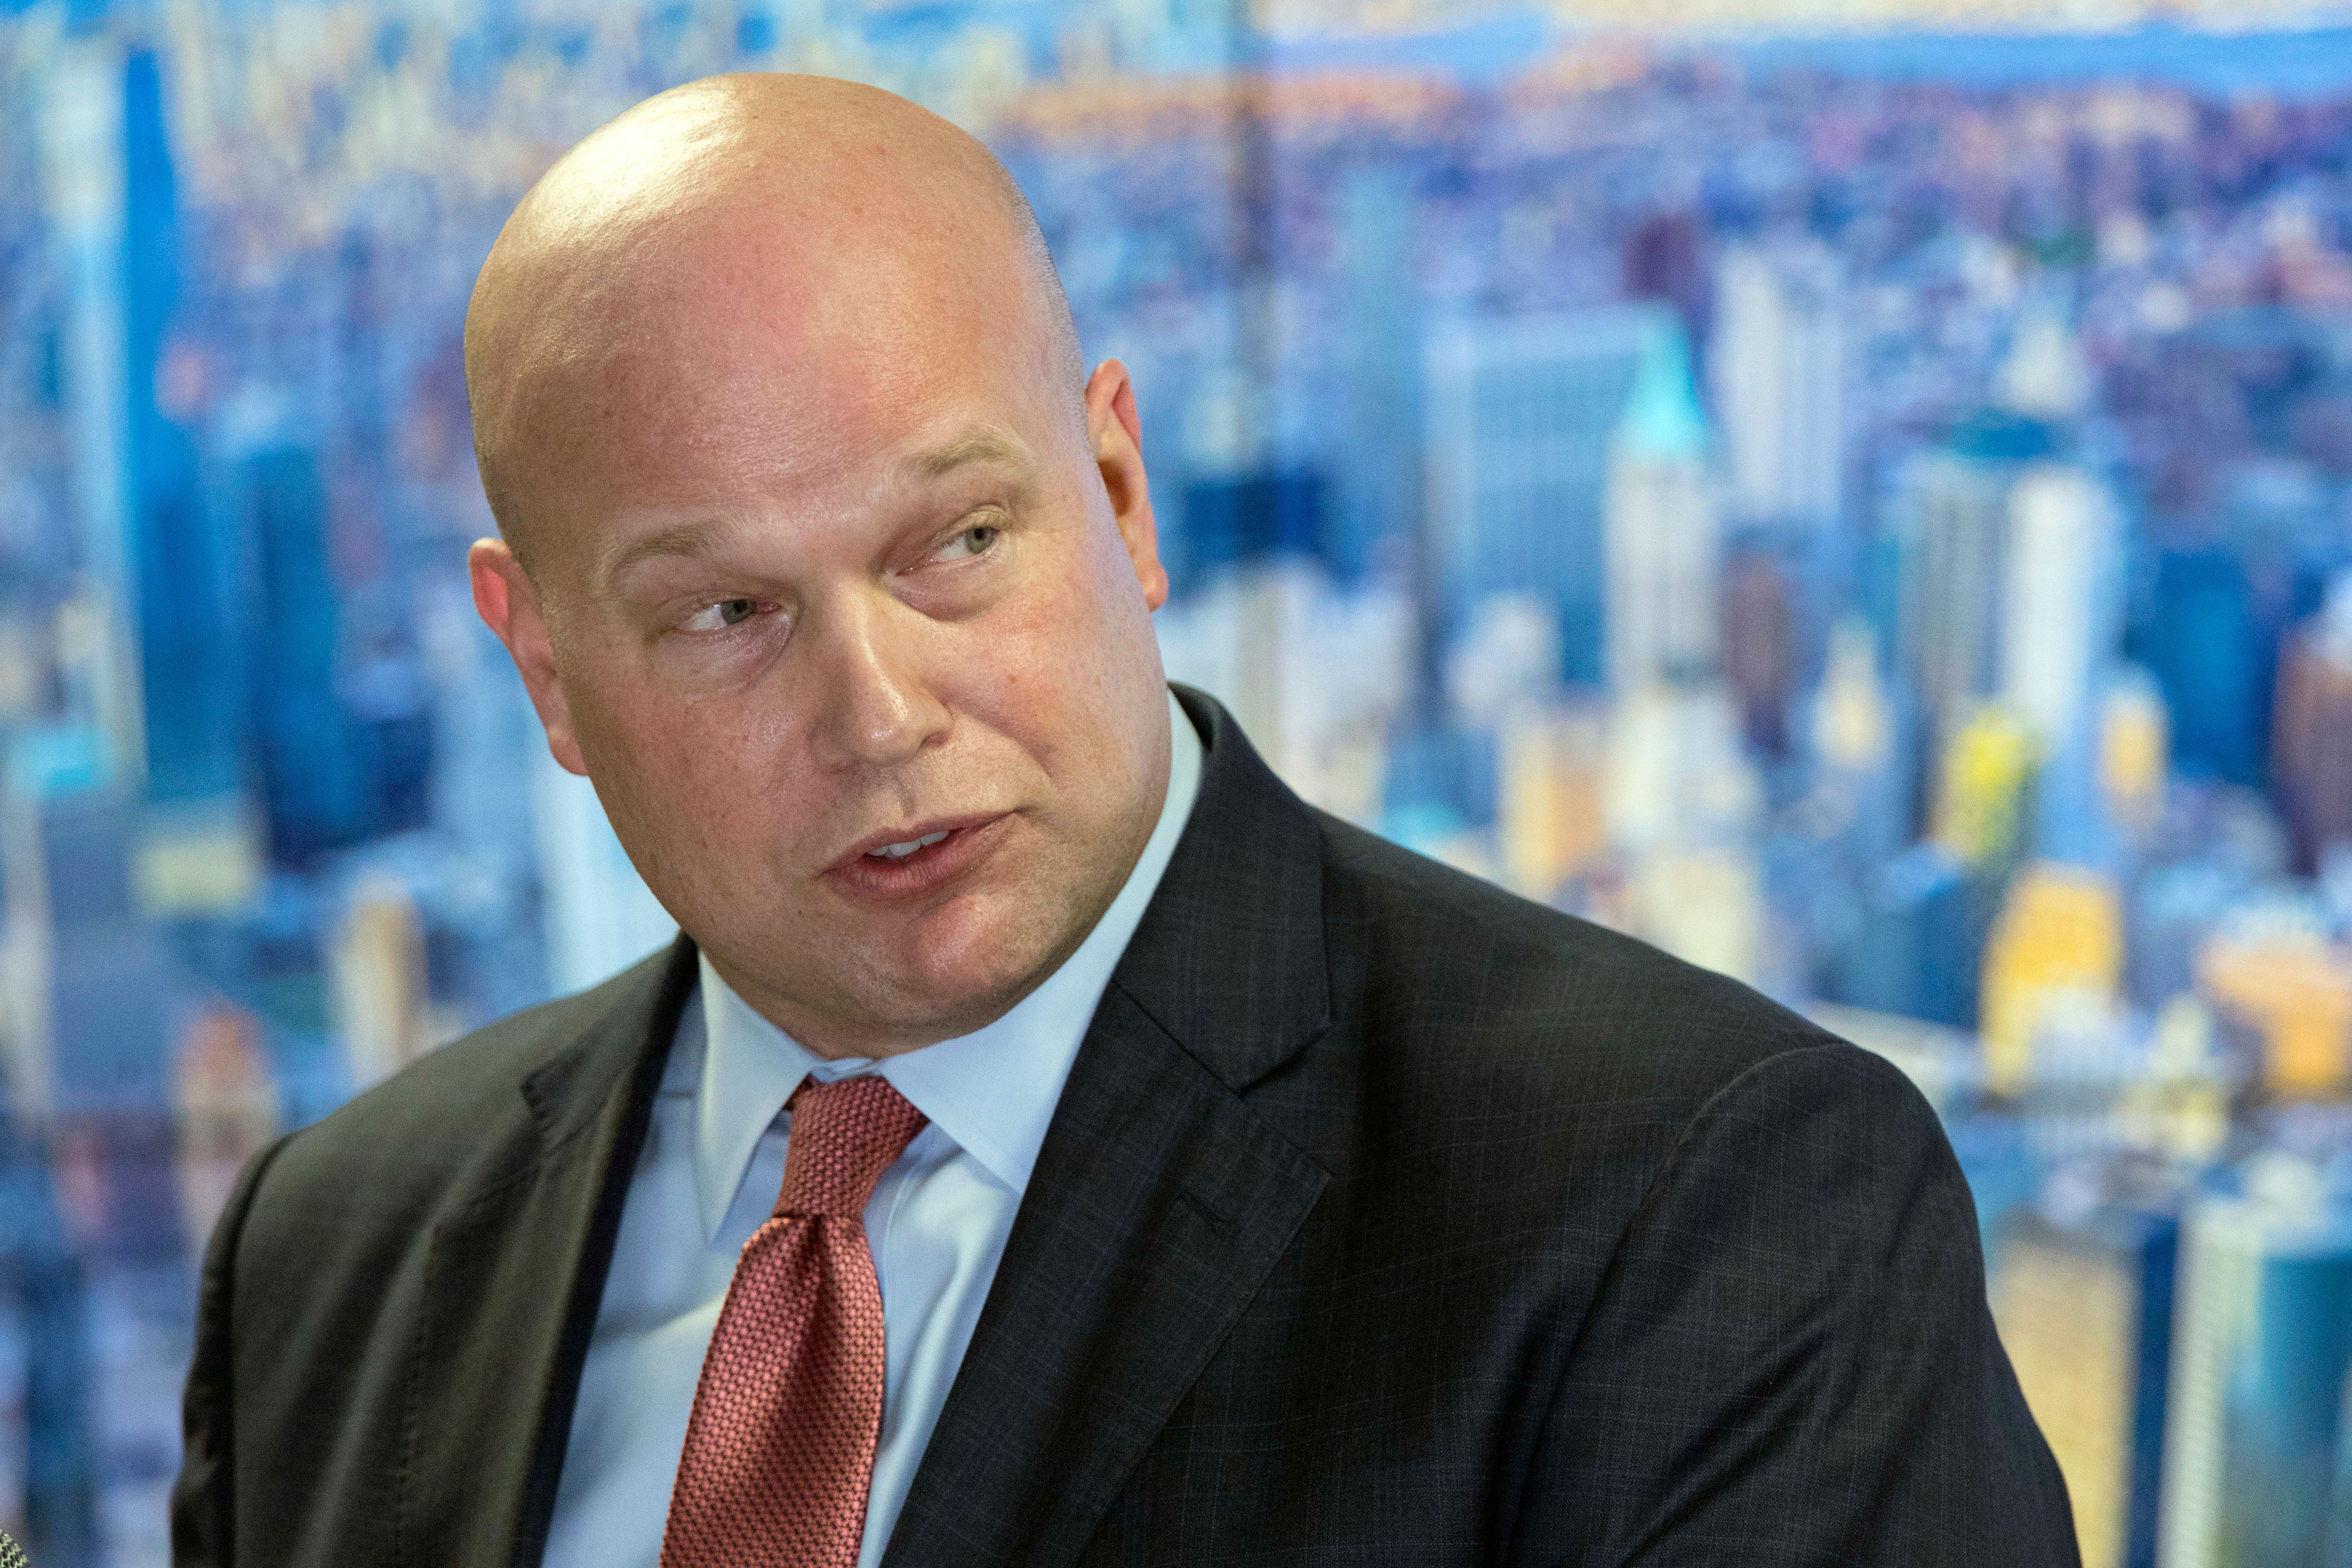 In this Nov. 21, 2018 photo, Acting Attorney General Matthew Whitaker, framed by a photograph of lower Manhattan, addresses law enforcement officials at the Joint Terrorism Task Force in New York. (AP Photo/Mary Altaffer)